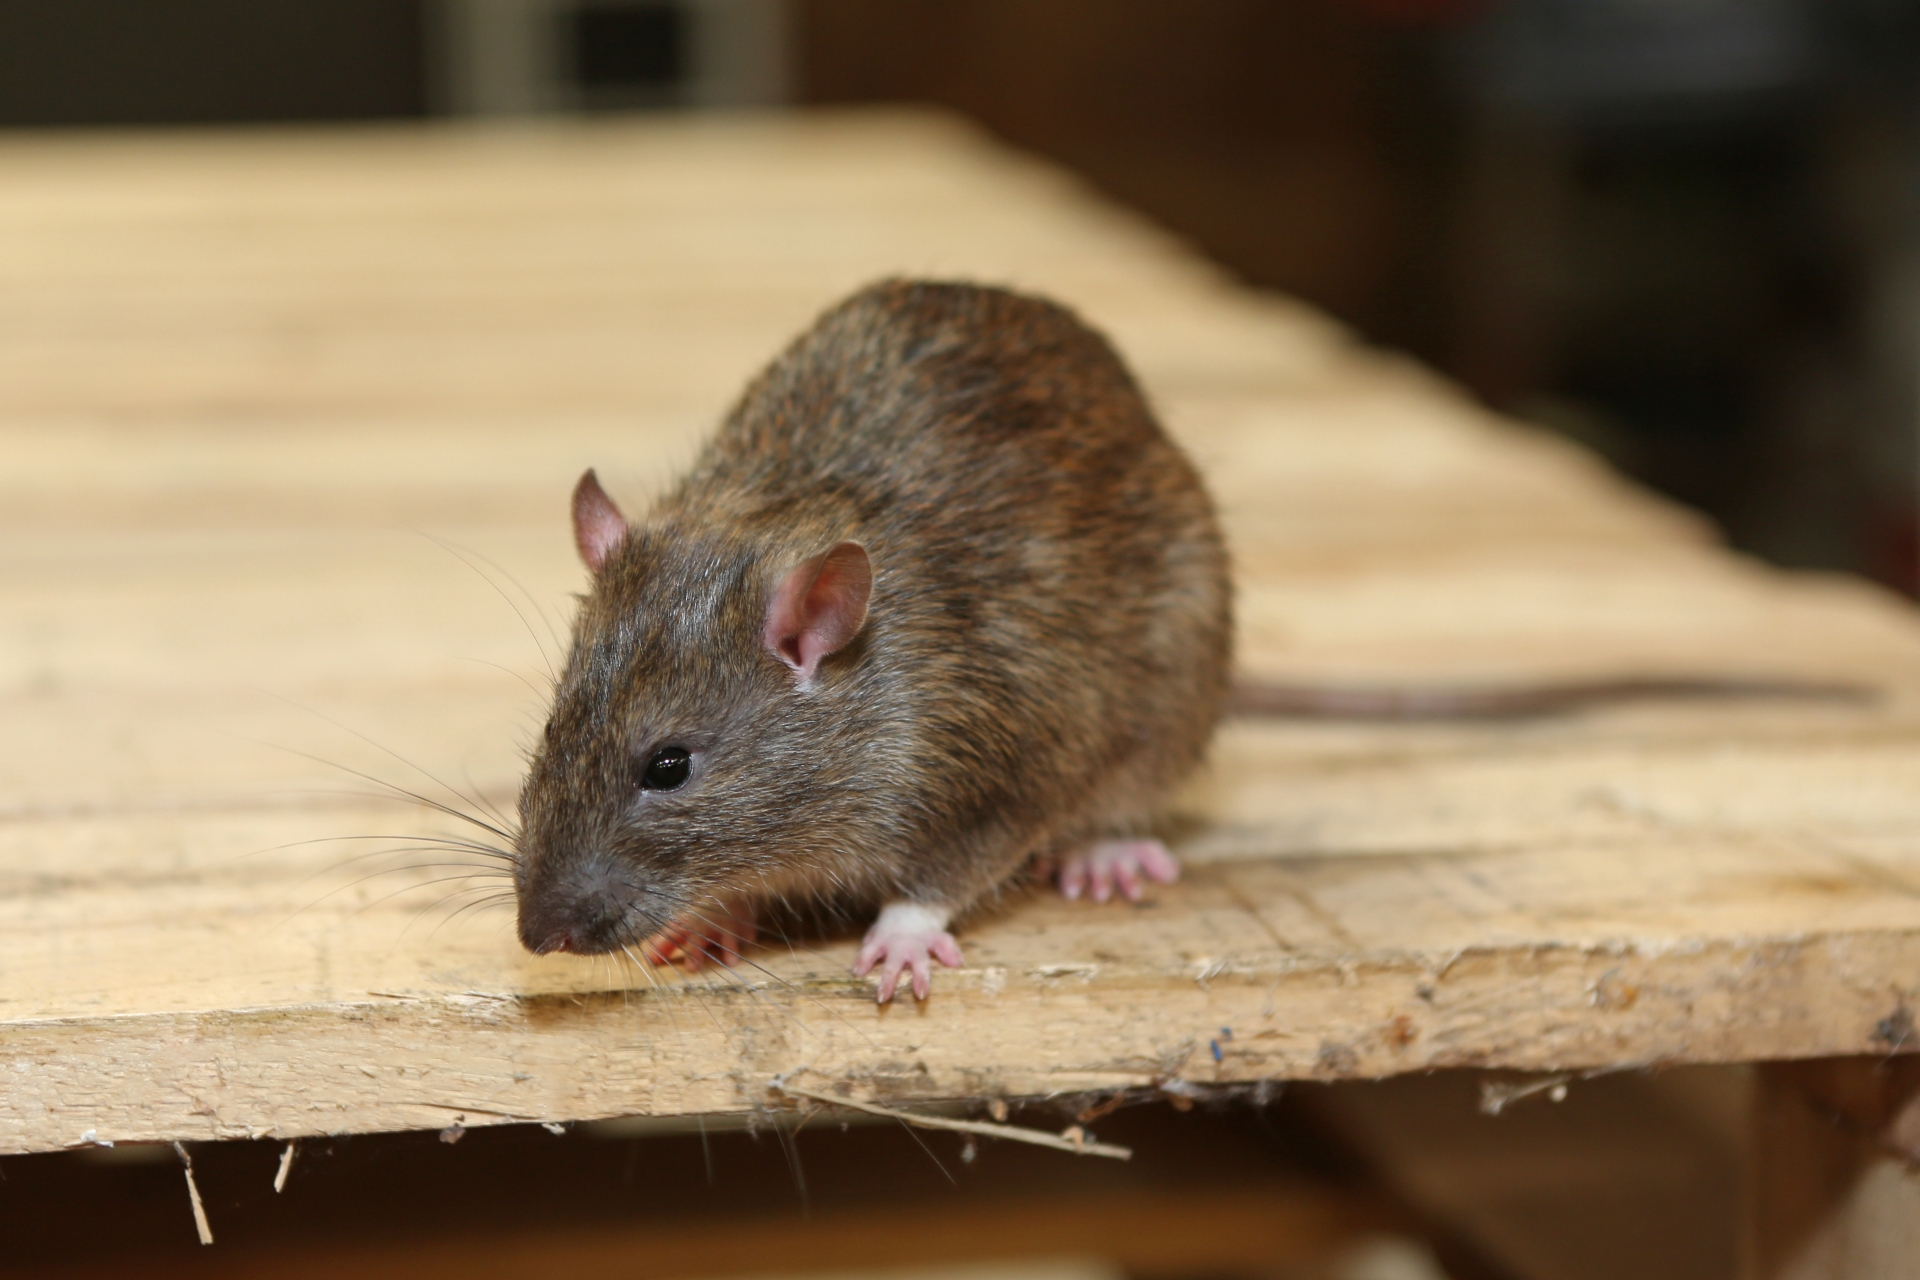 Rat Infestation, Pest Control in Leyton, E10. Call Now 020 8166 9746